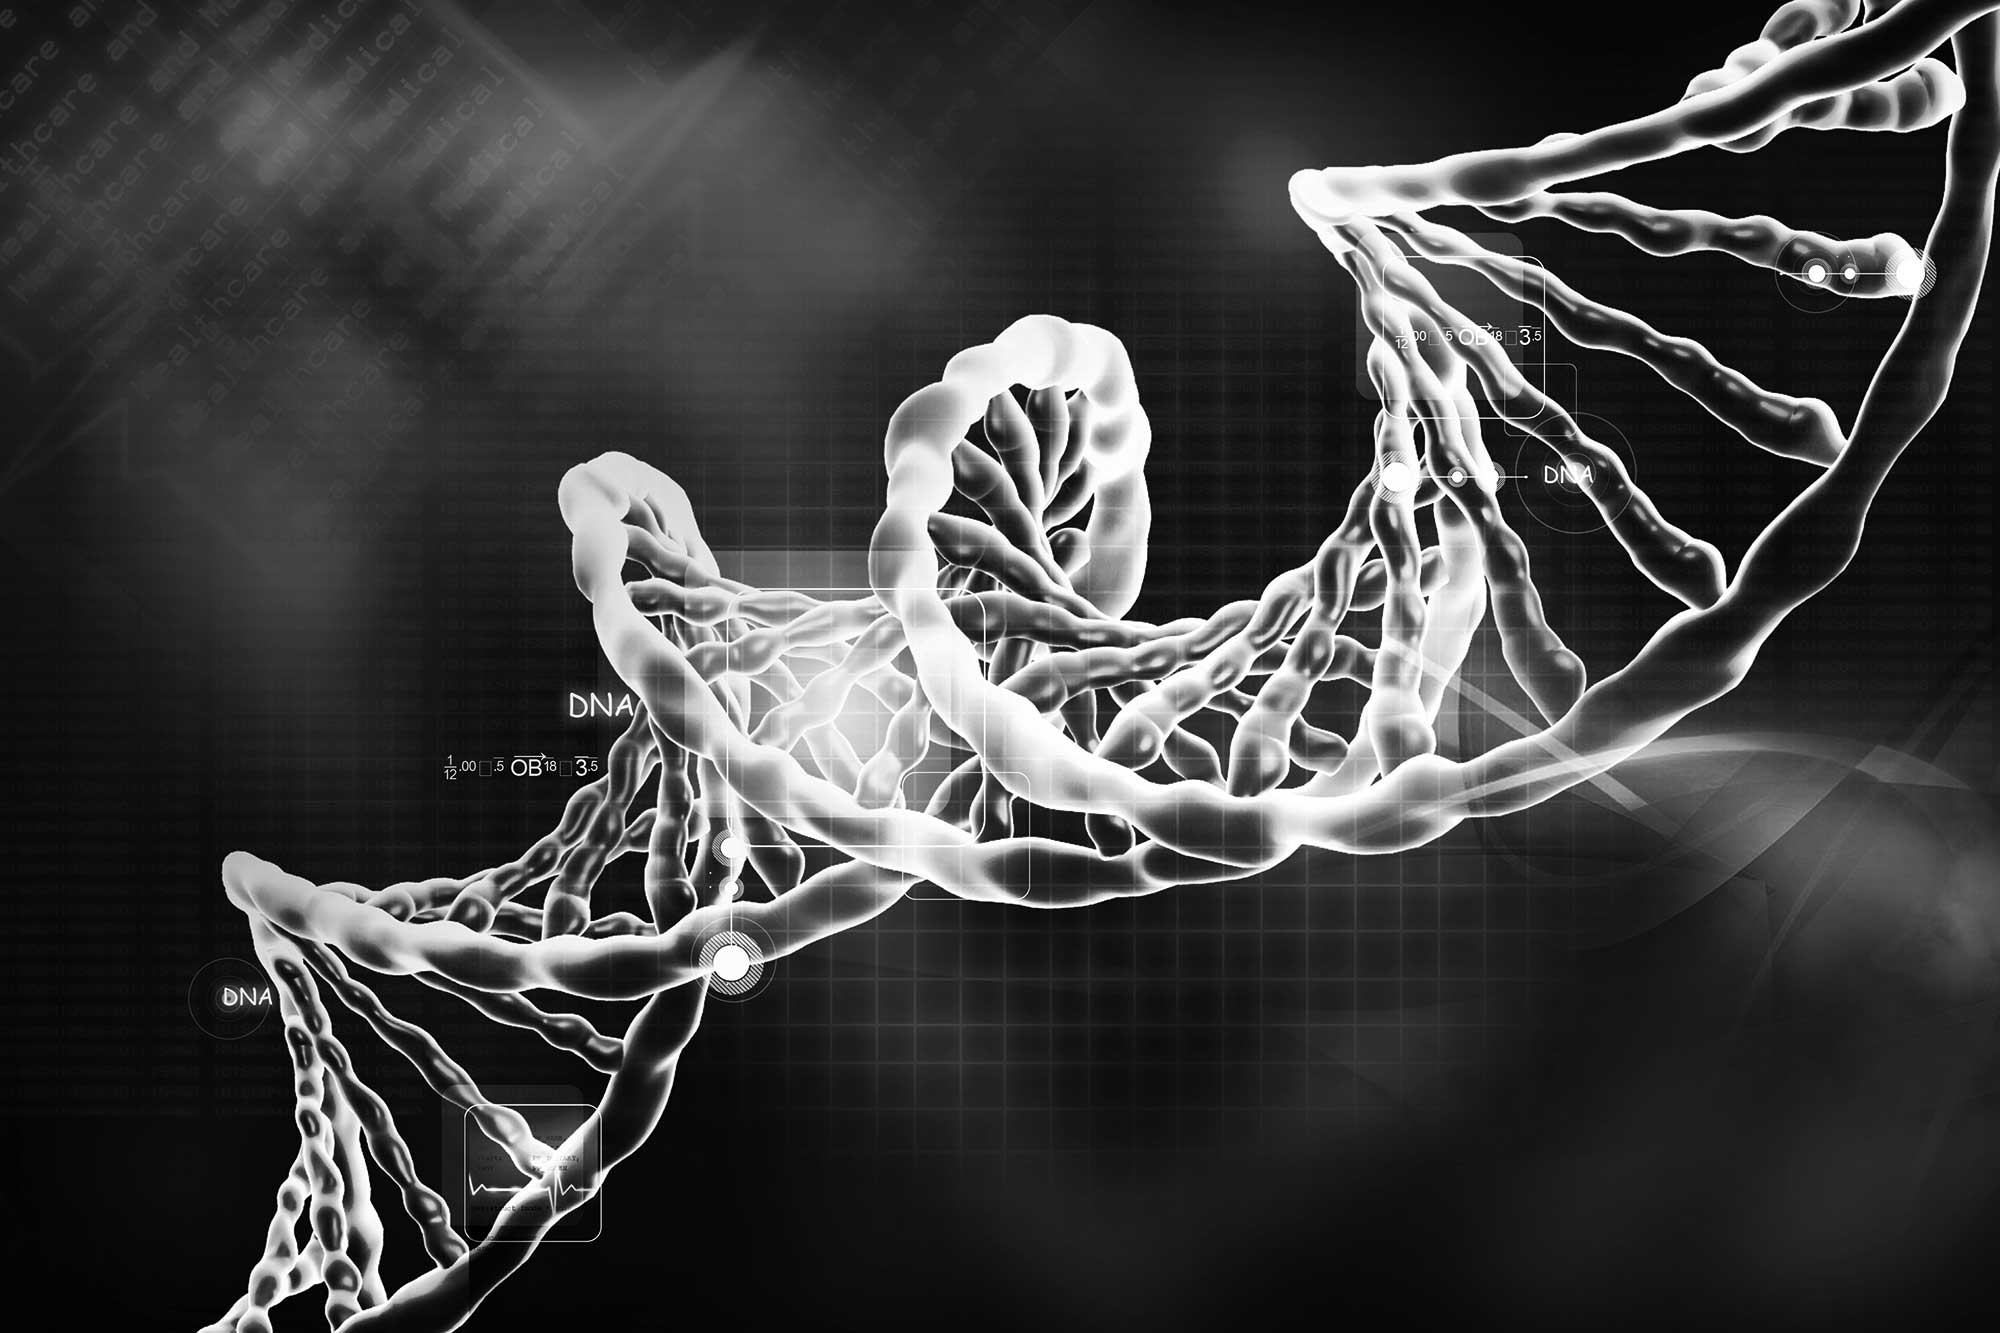 dna-strand-grayscale